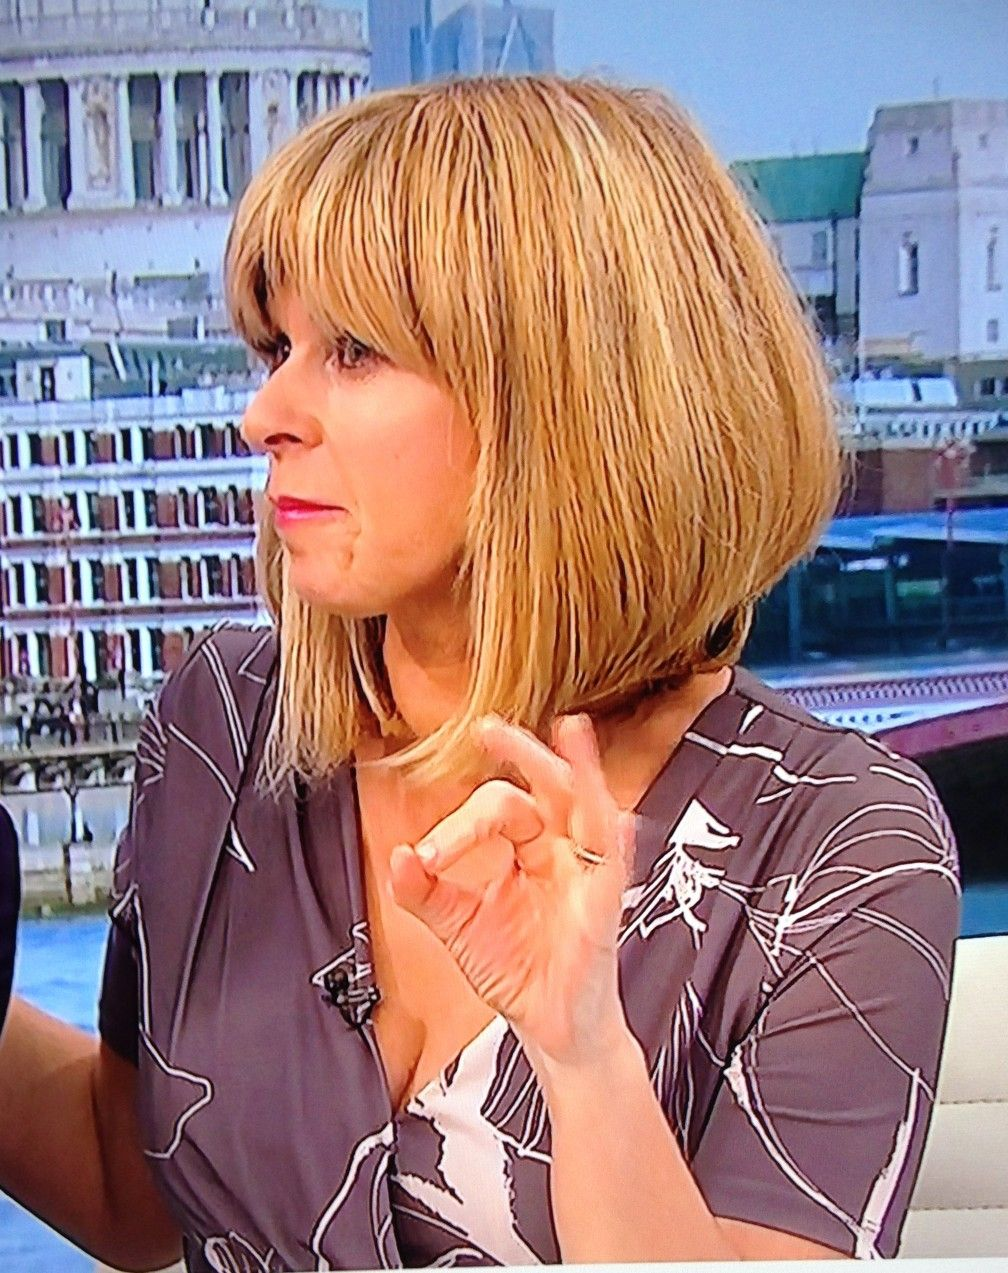 Kate Garraway From Zero To Hero I Suopose The Last Thing That People Want To Think Isvthat There Wrong Love James E F Kate Garraway Bob Hairstyles Kate